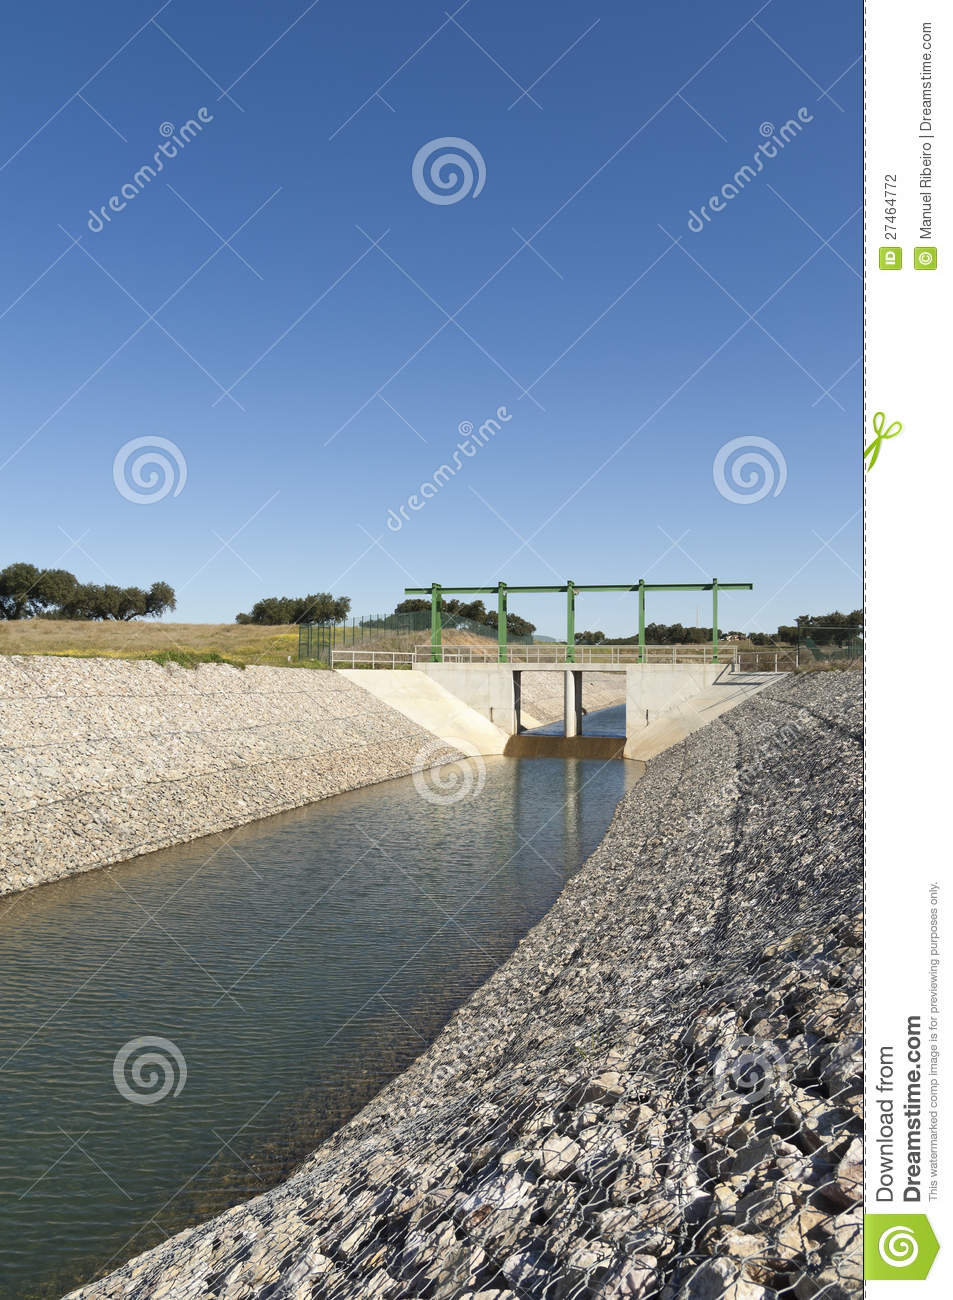 Water Canal Gate http://www.dreamstime.com/stock-photography-water-diversion-canal-image27464772